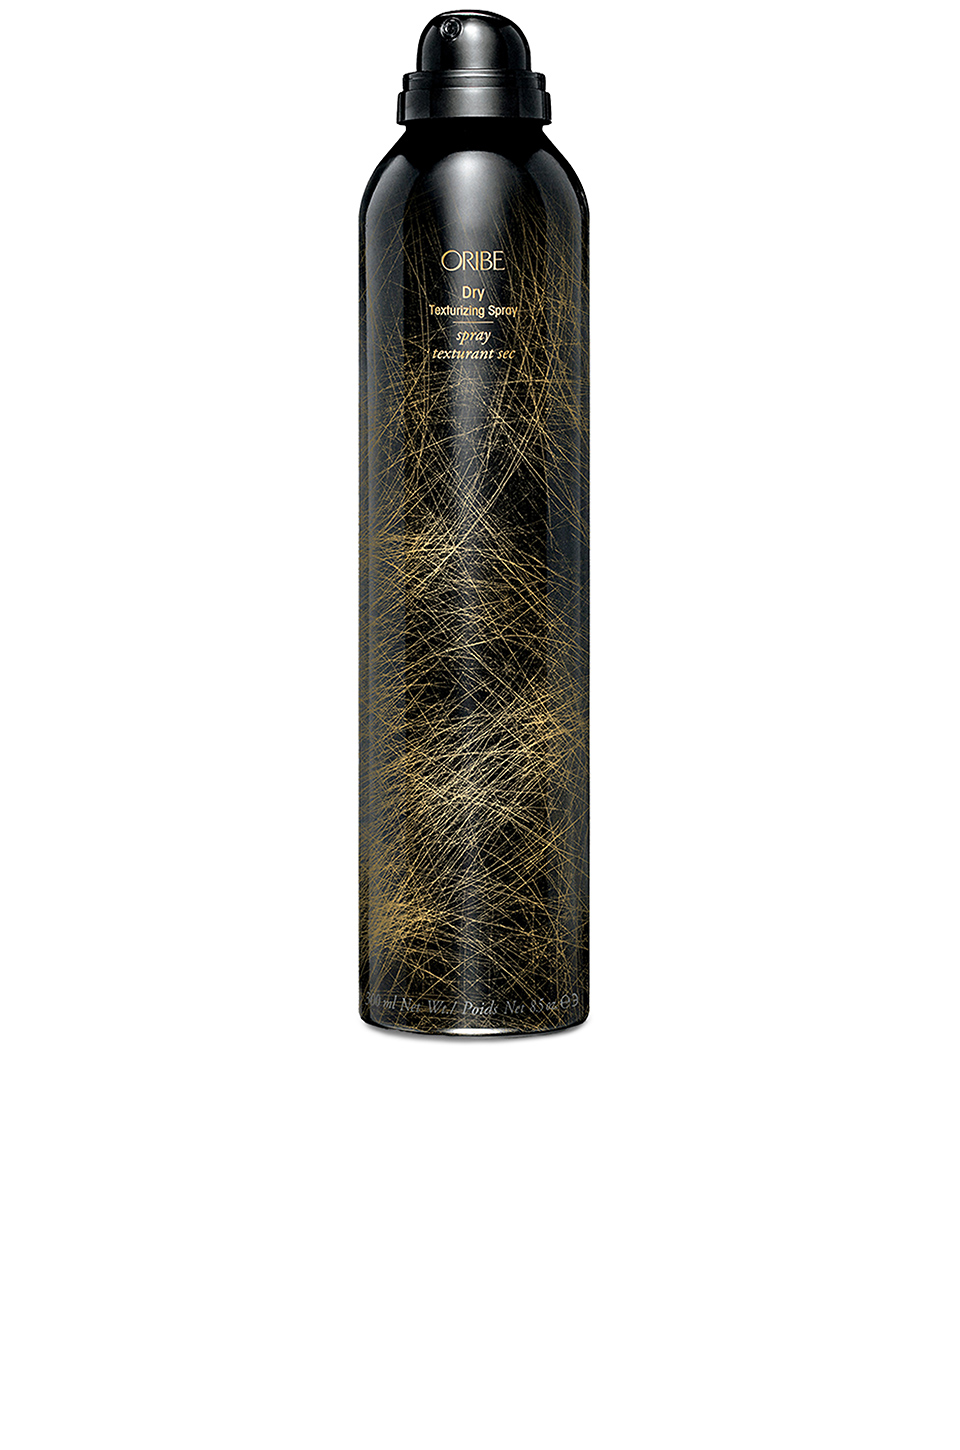 Oribe Dry Texturizing Spray in